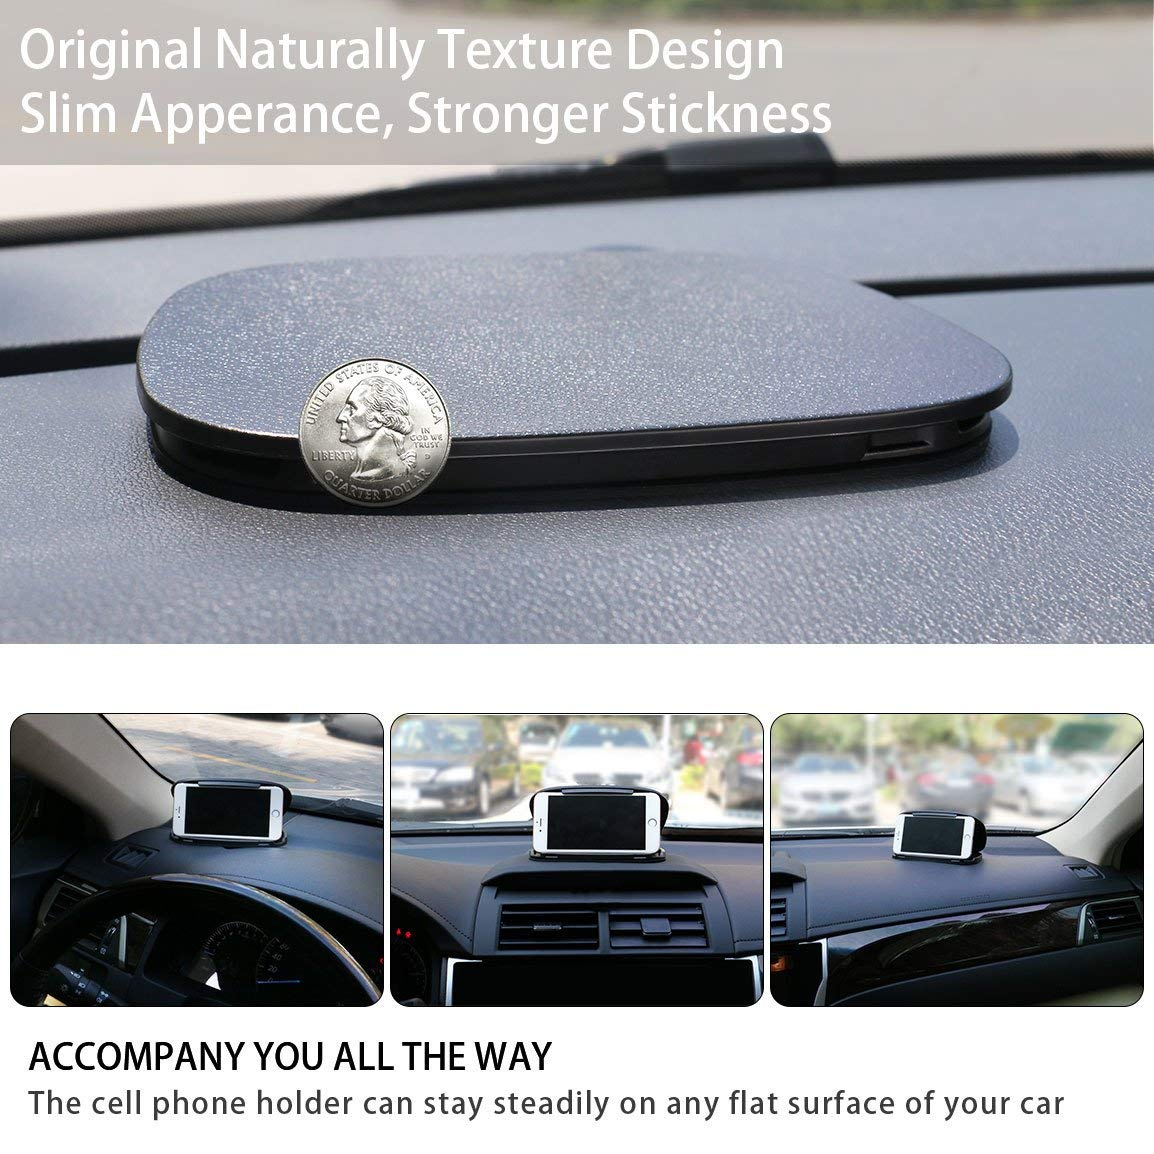 Reusable Silicone Pad Base Slim Dashboard Car Phone Mount for iPhone X 8 Plus 7 6s Samsung Galaxy S9 S8 Edge Note 8 LG and Other Garmin GPS GPS Mounts for car Bosynoy Cell Phone Holder for Car